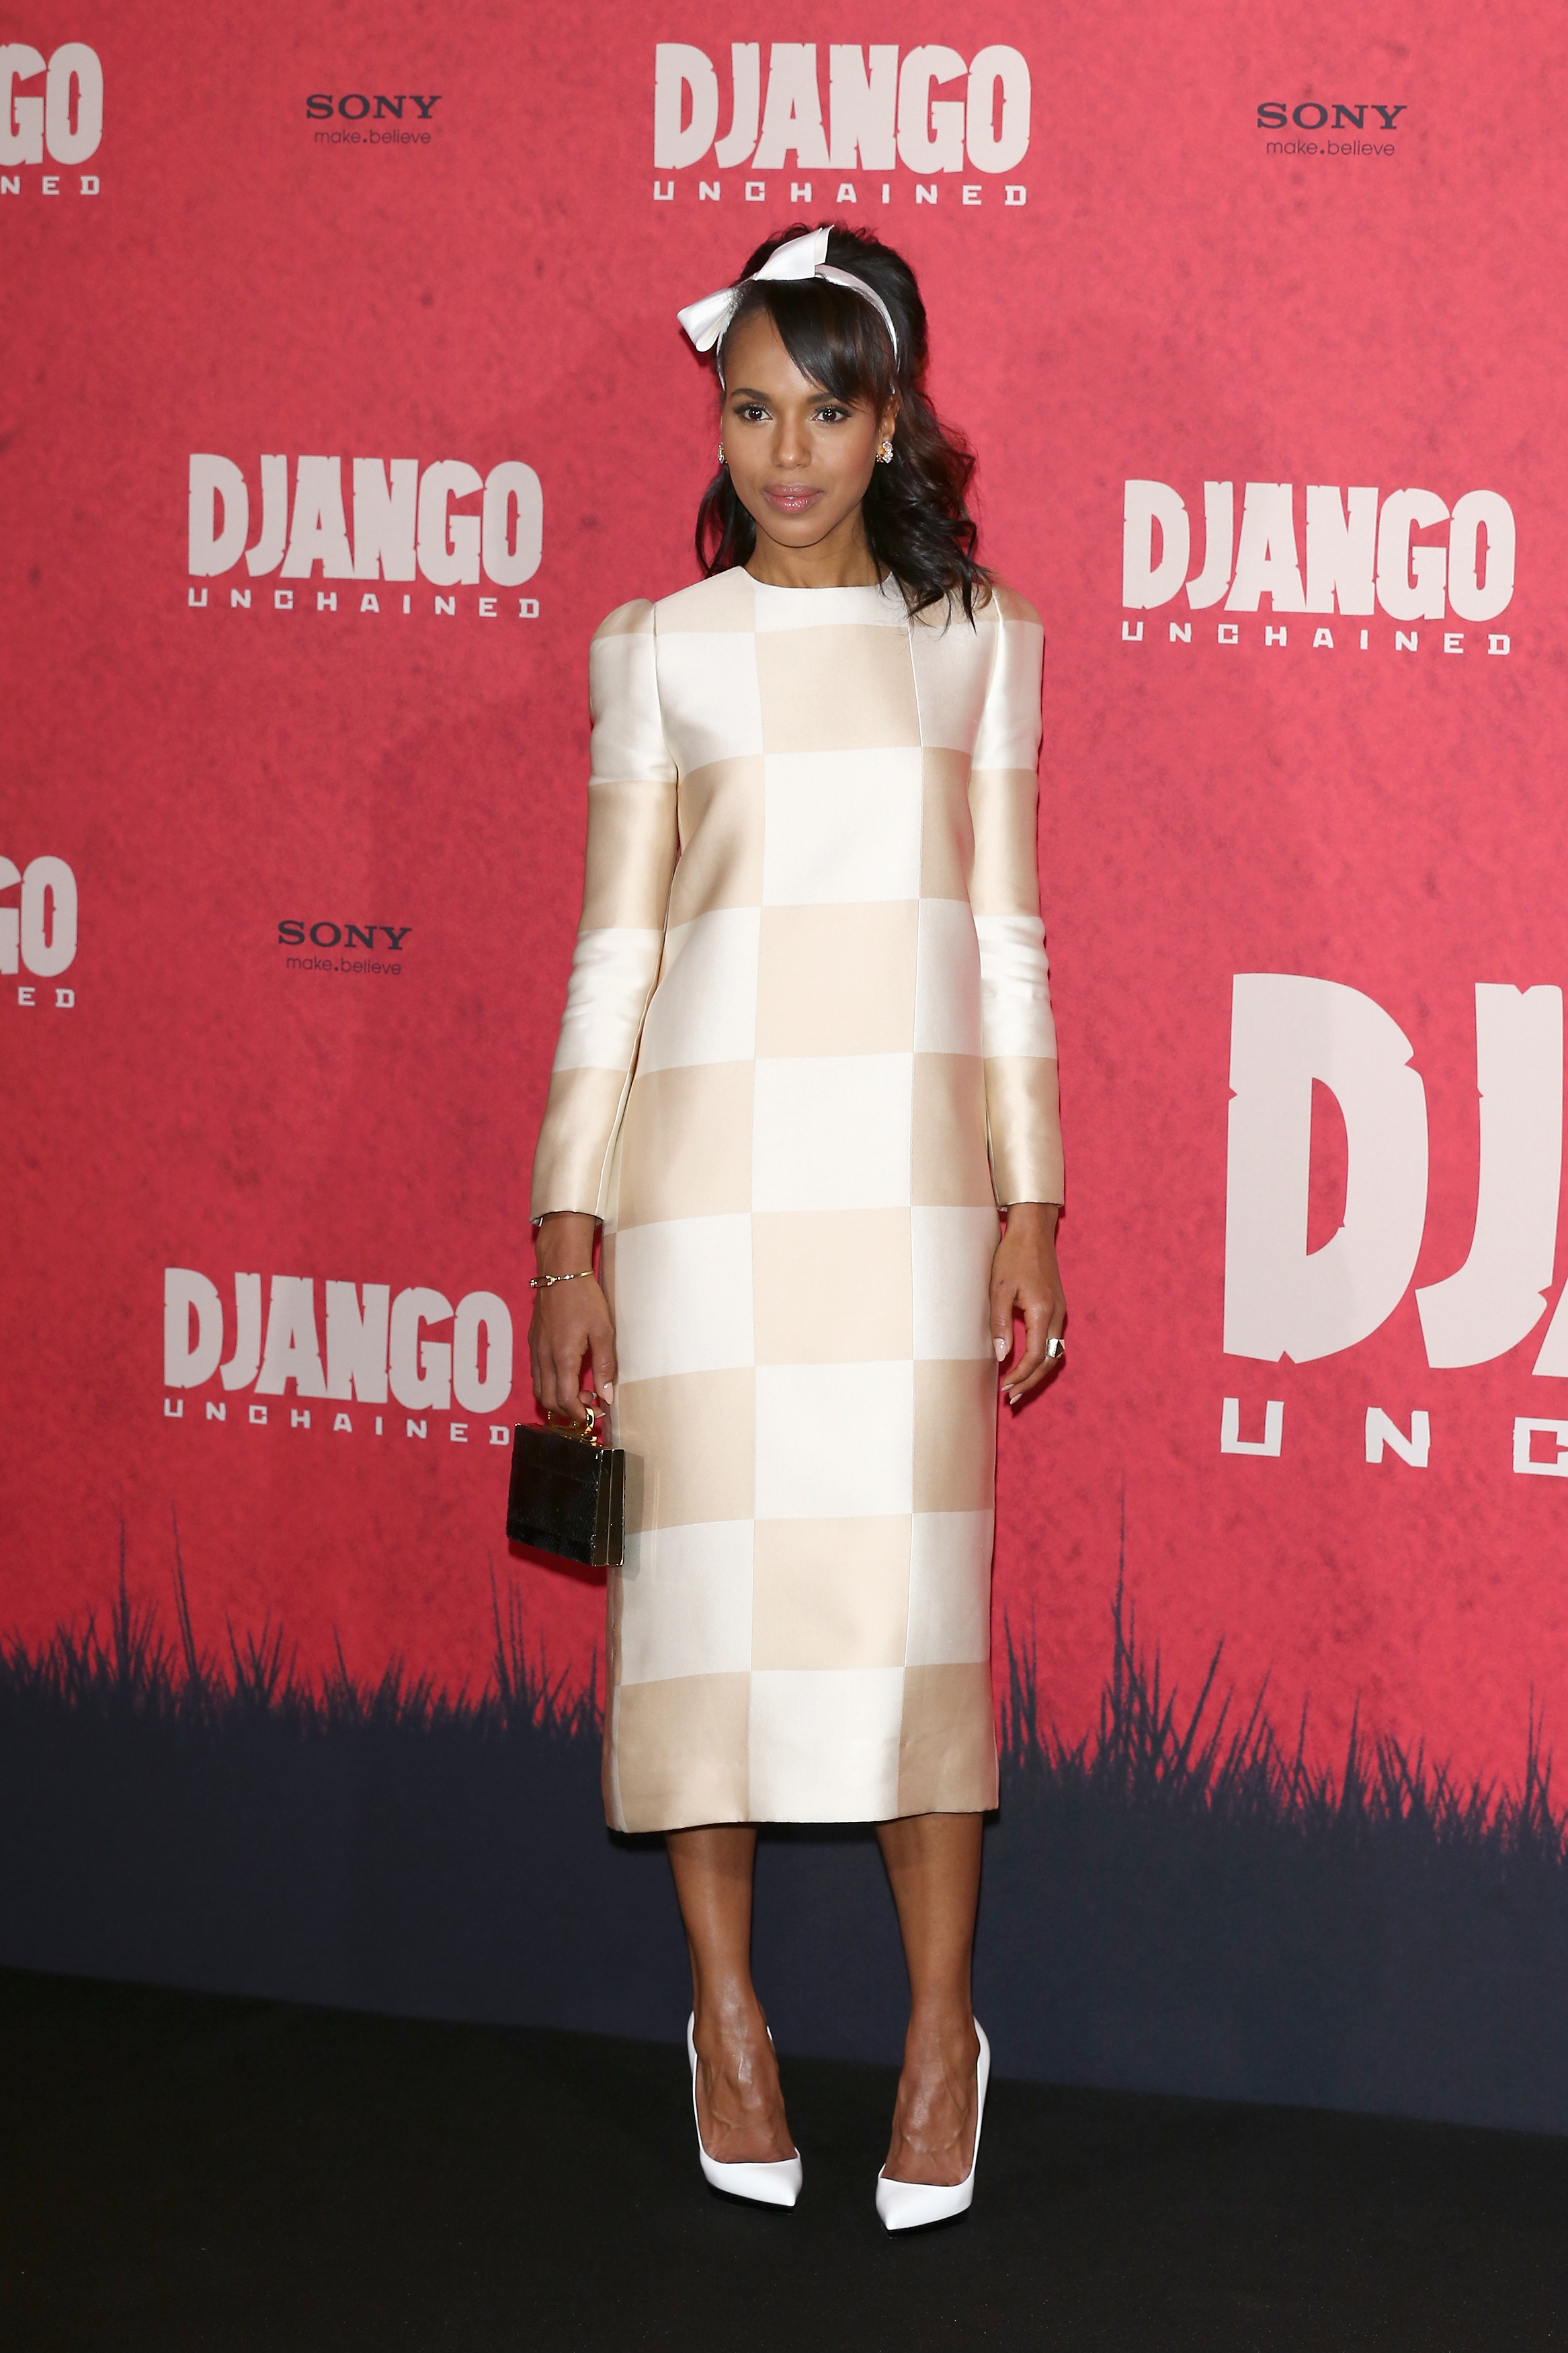 Kerry went for a seriously girlie '60s-inspired look for the movie's photocall in Berlin, wearing a white and cream long-sleeved checkerboard print dress (and dainty bow headband) from Louis Vuitton's Spring 2013 ready-to-wear collection. We can't even digest how cute this look is — while it's certainly a risky one, we think Kerry pulled it off flawlessly. She finished the look with Christian Louboutin's Pigalle Plato pumps and a VC Signature Ring Clutch ($250).